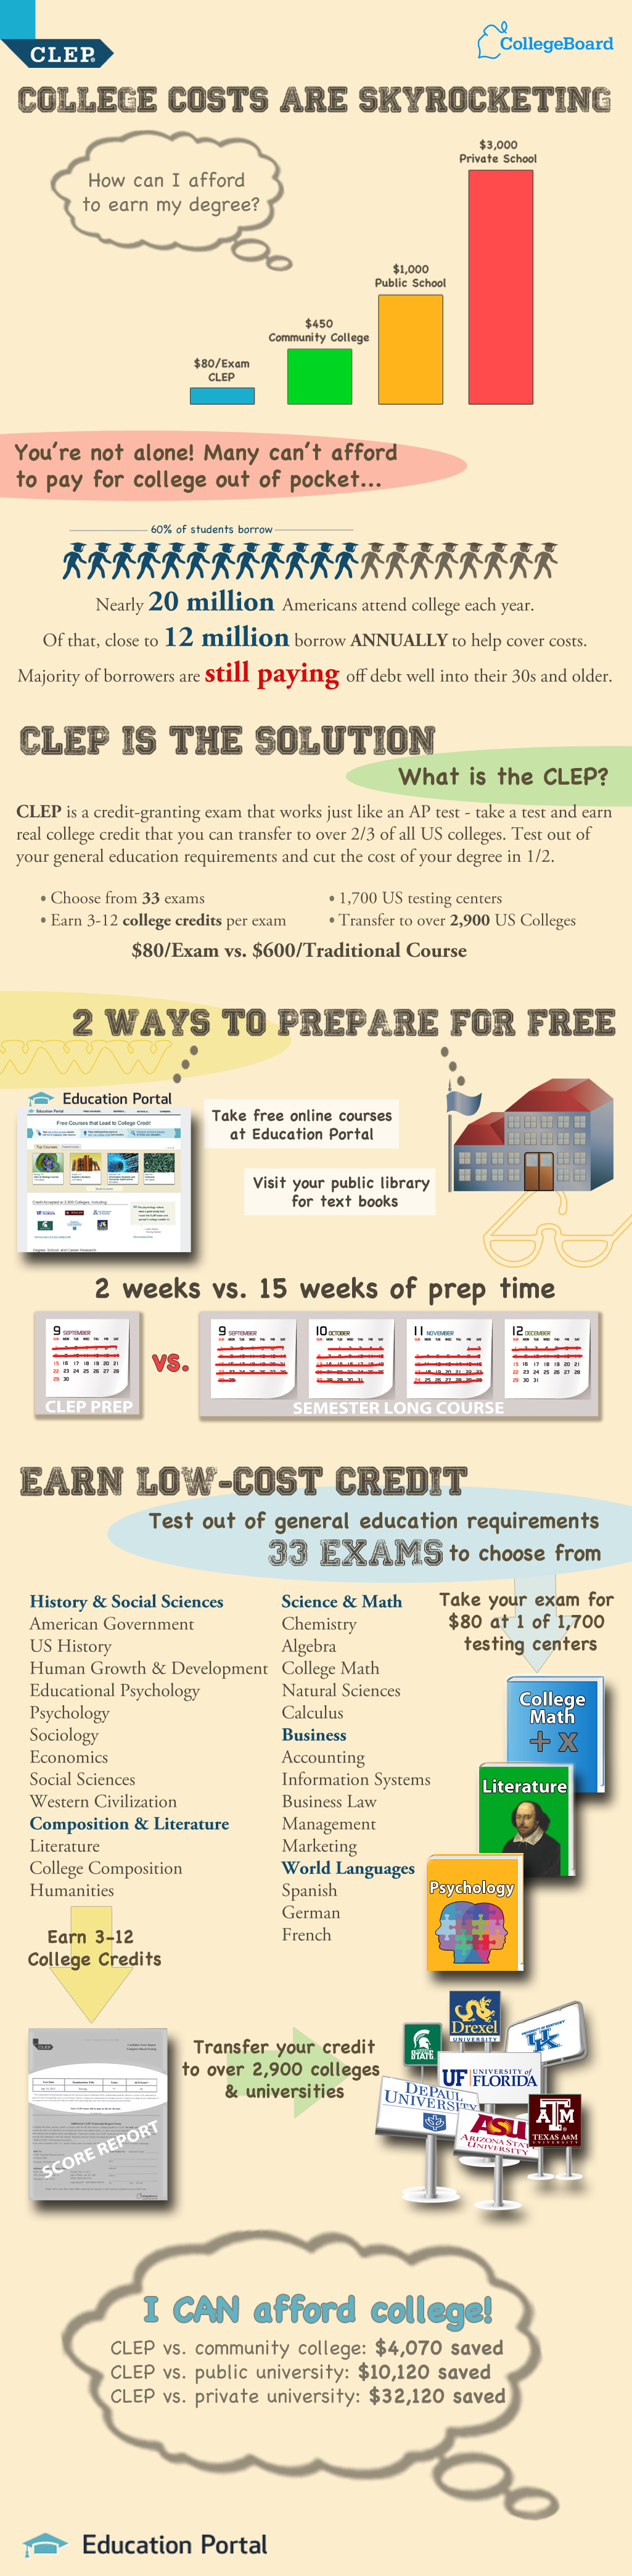 How CLEP Exams Work to Earn a Debt-Free College Degree